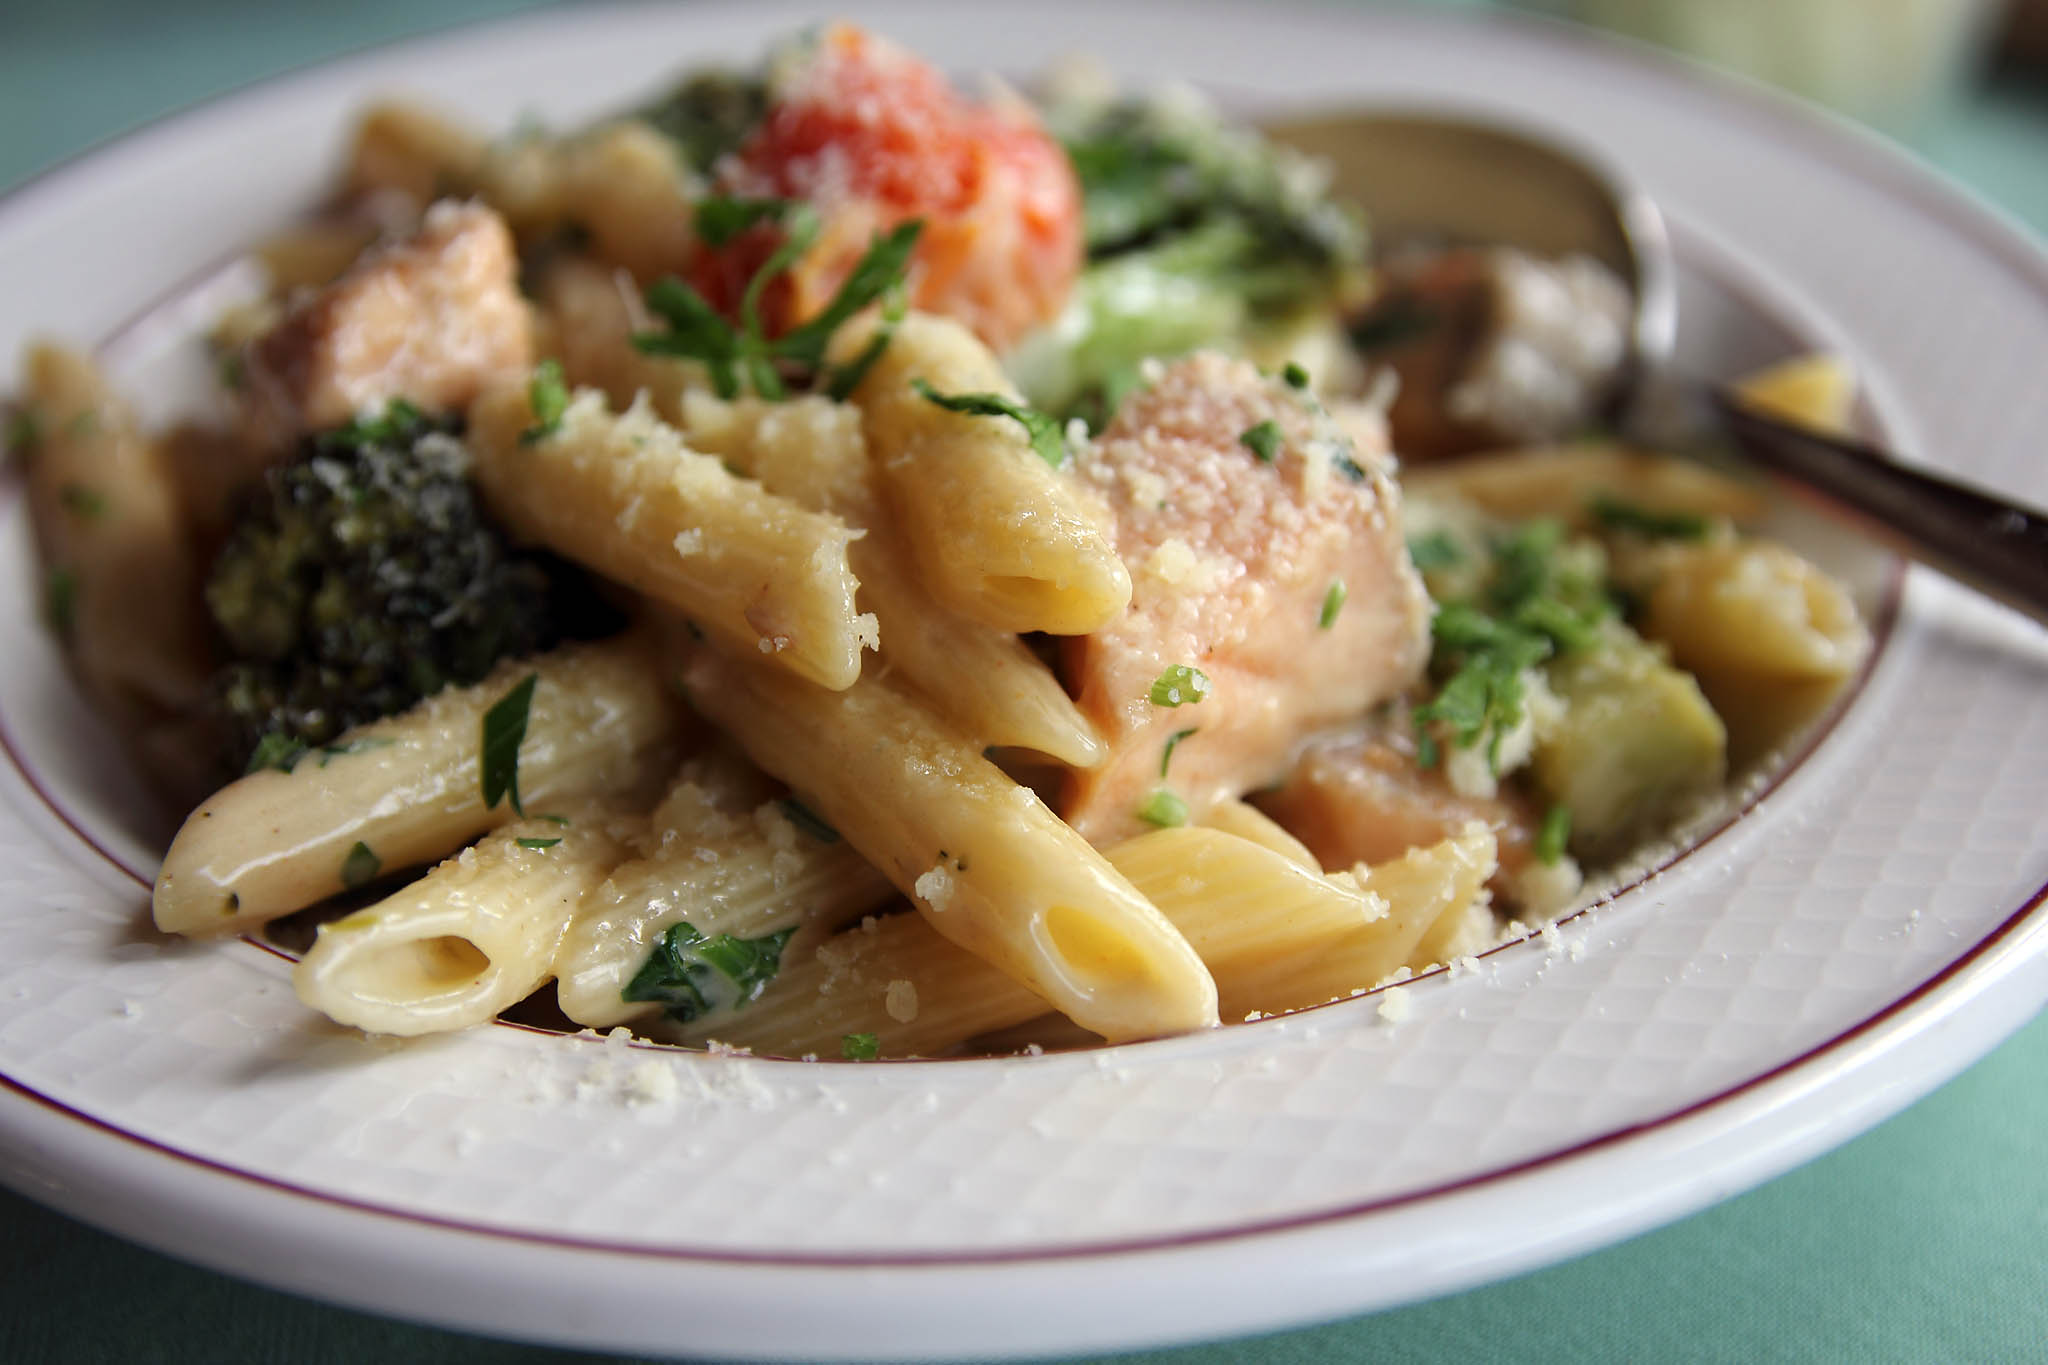 penne with salmon and broccoli